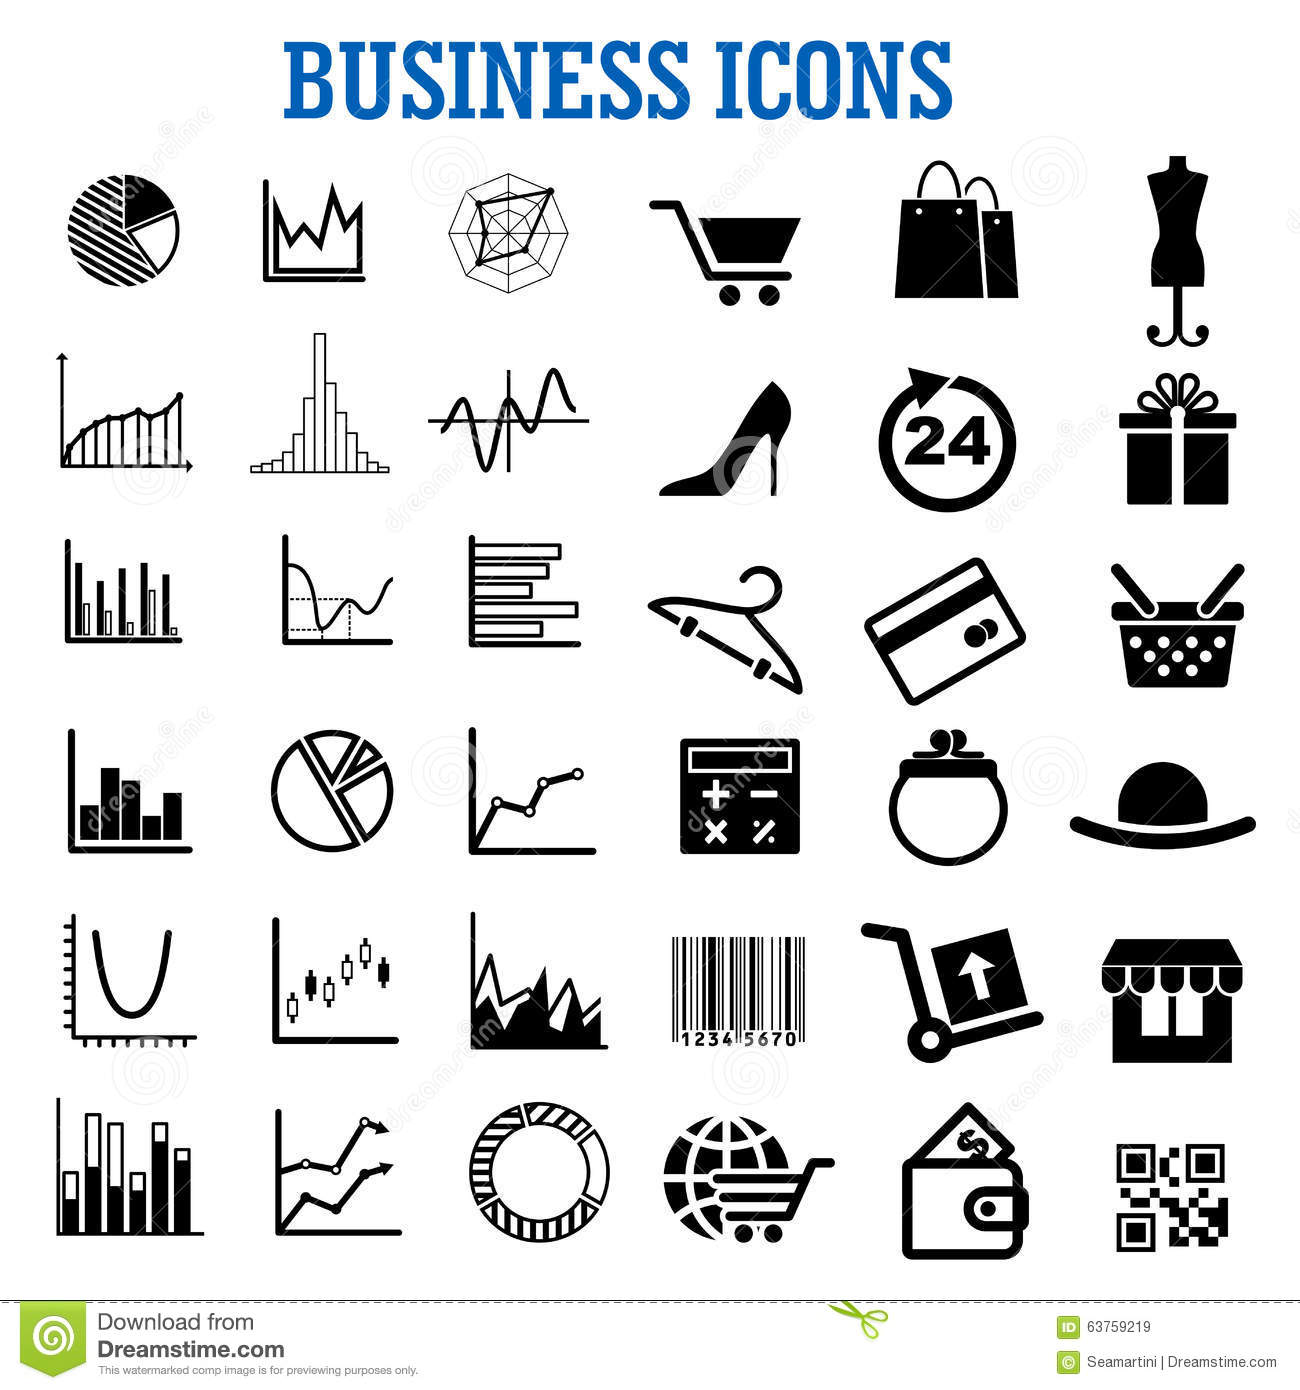 Business Finance: Business, Finance, Shopping And Retail Flat Icons Stock